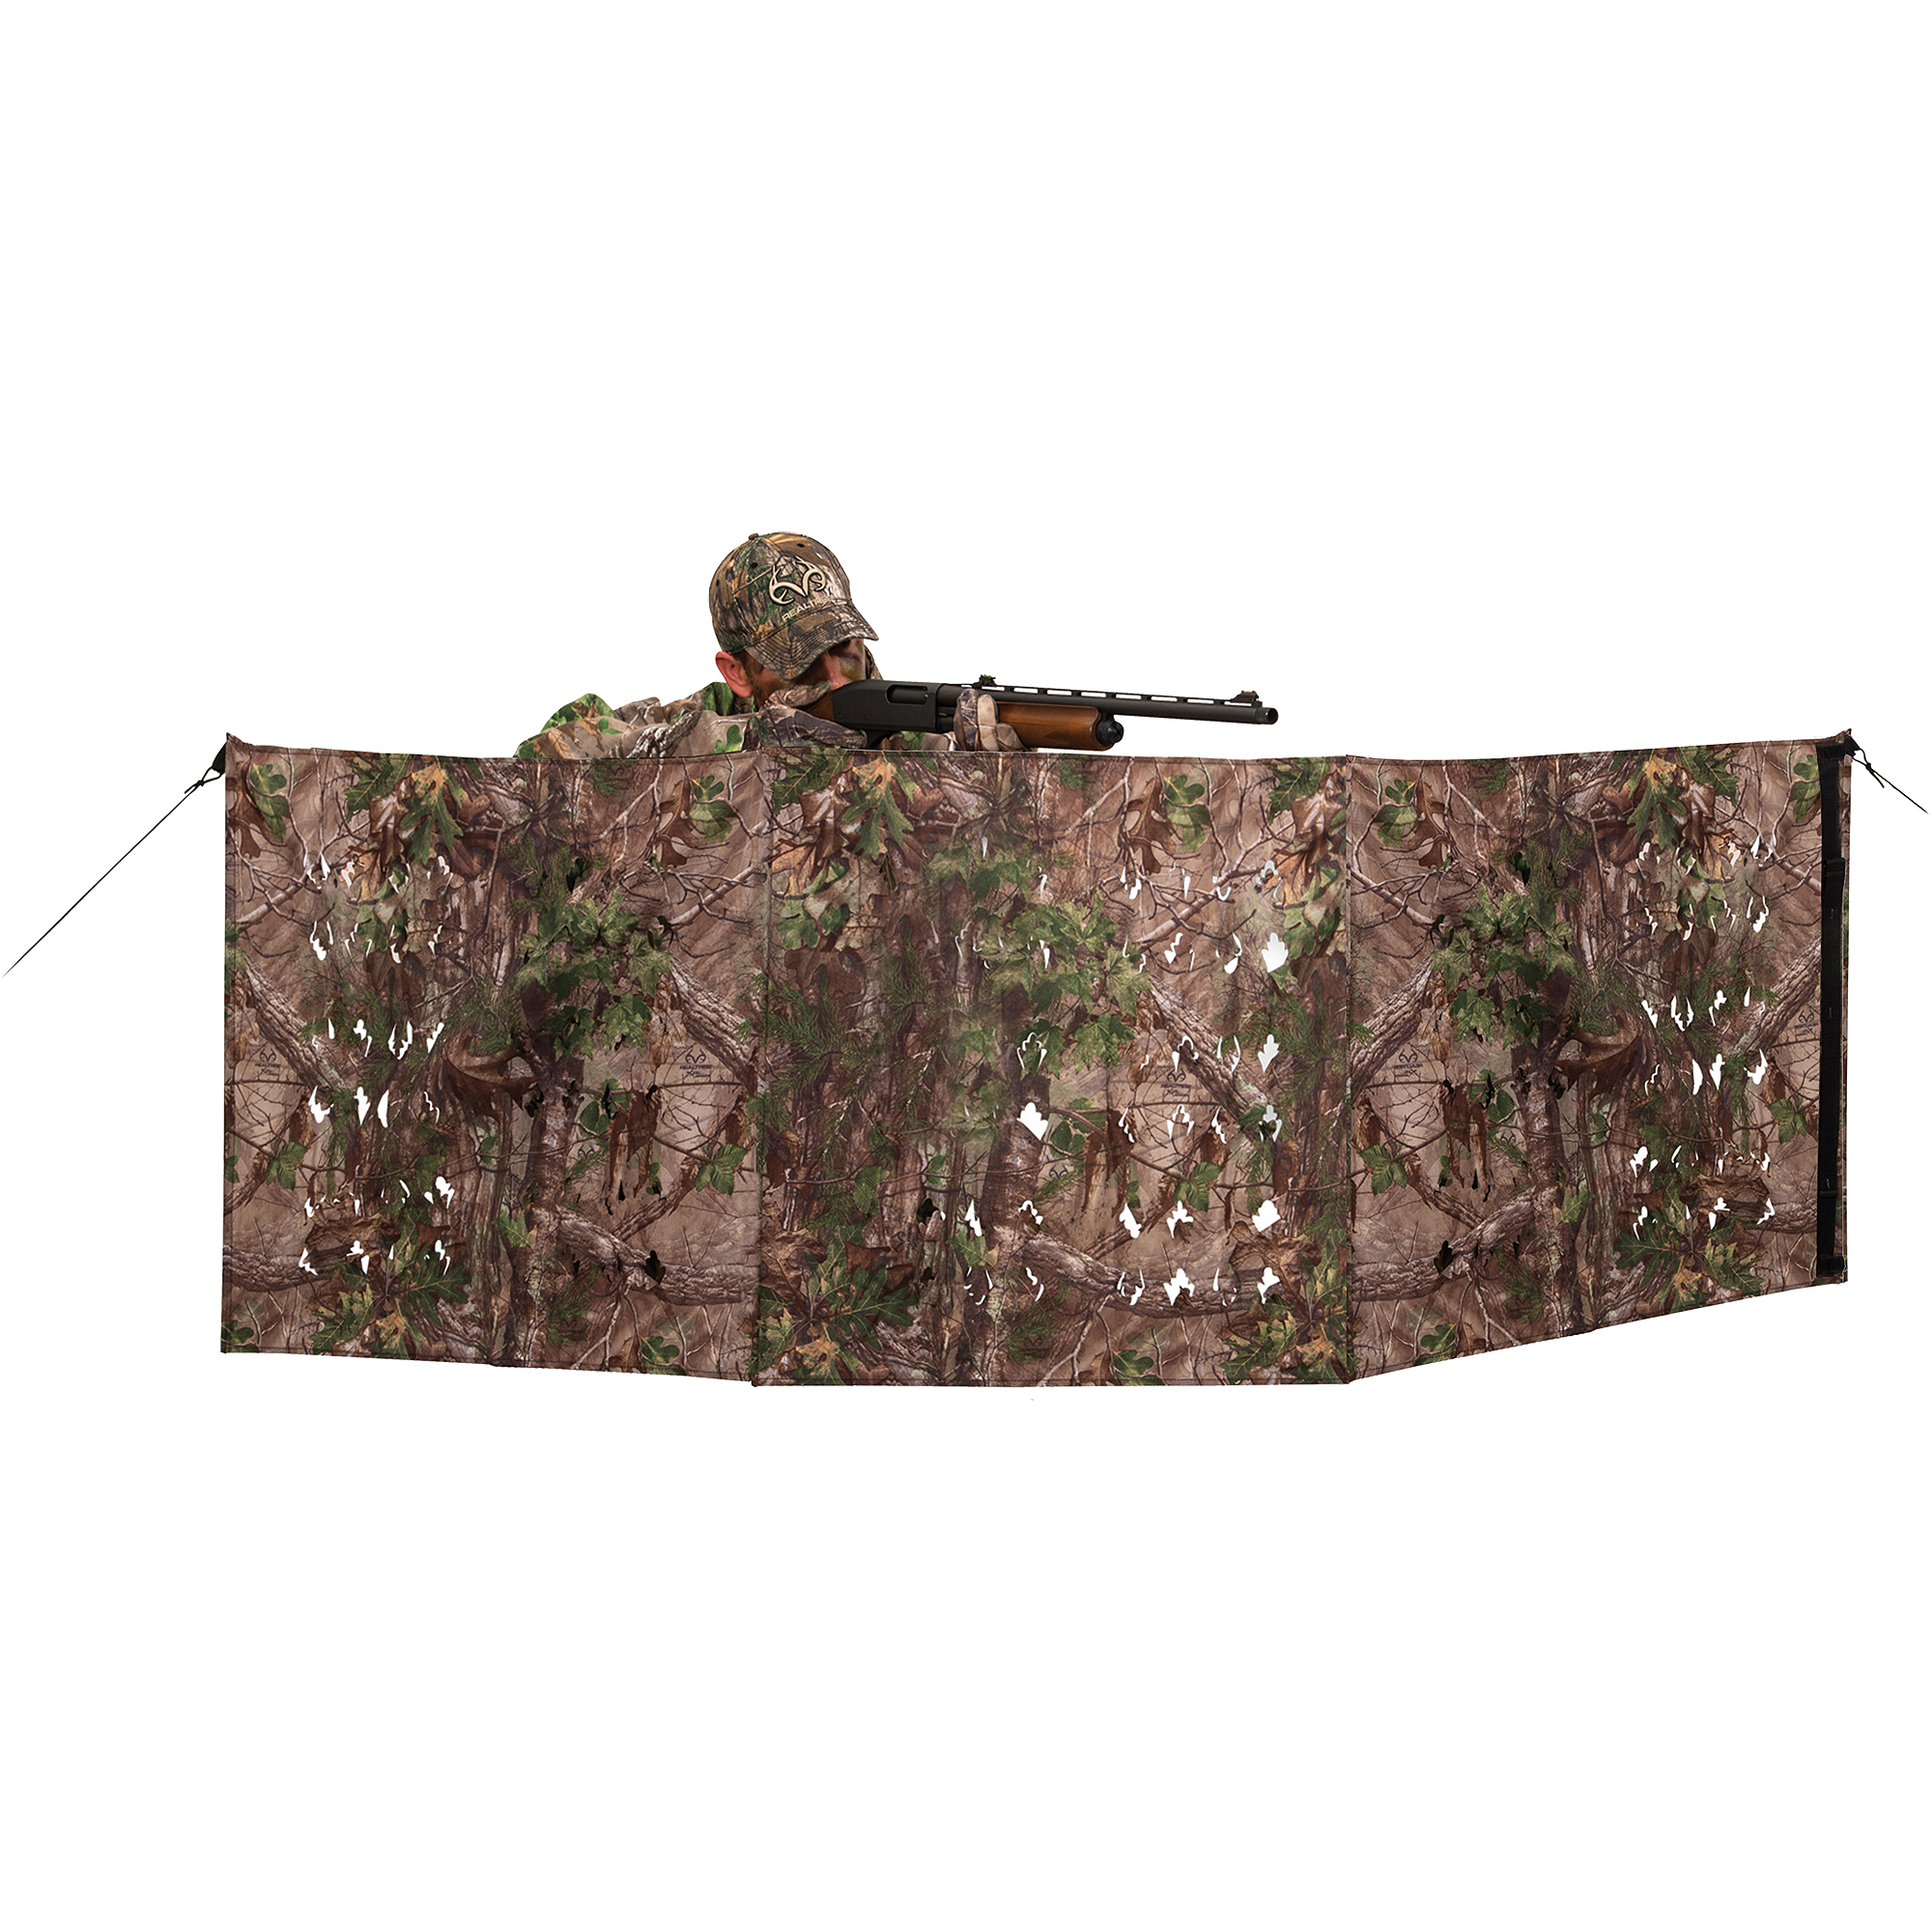 gear and feeders with other hunting blinds outfitter ft including products price